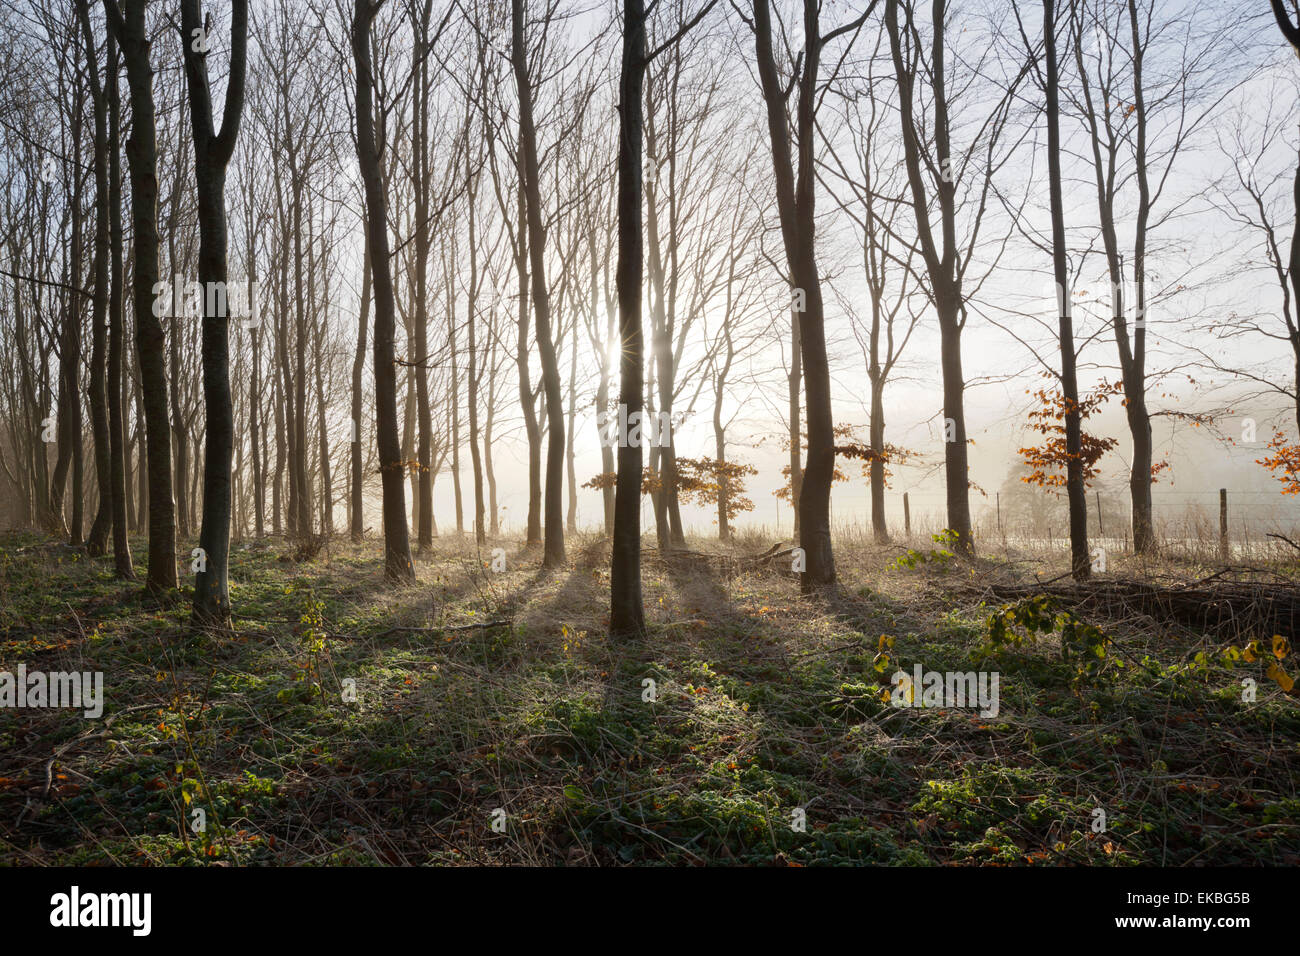 Misty wood in winter, Stow-on-the-Wold, Gloucestershire, Cotswolds, England, United Kingdom, Europe Stock Photo